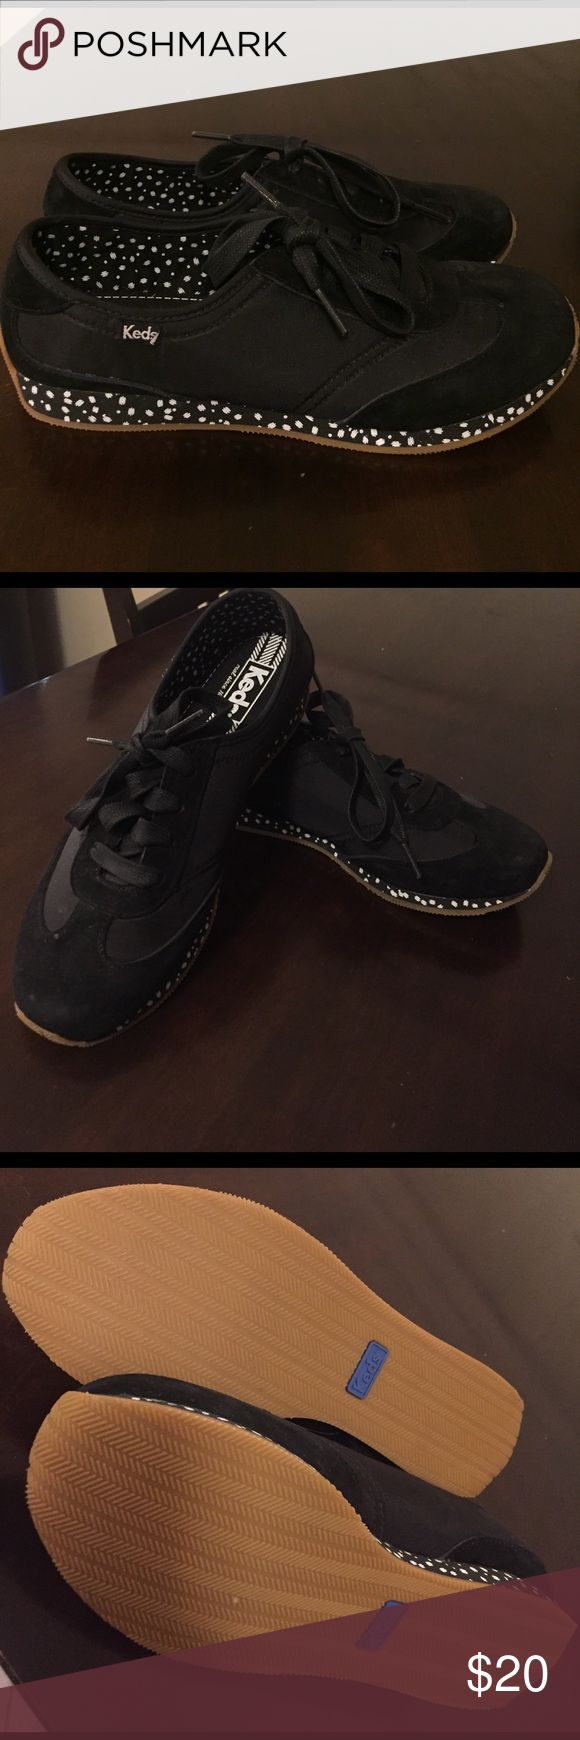 Black KEDS comfortable sneakers size 6 New without tags black KEDS sneakers size 6 woman's sole black/white pattern super comfy and cute for casual days Keds Shoes Sneakers